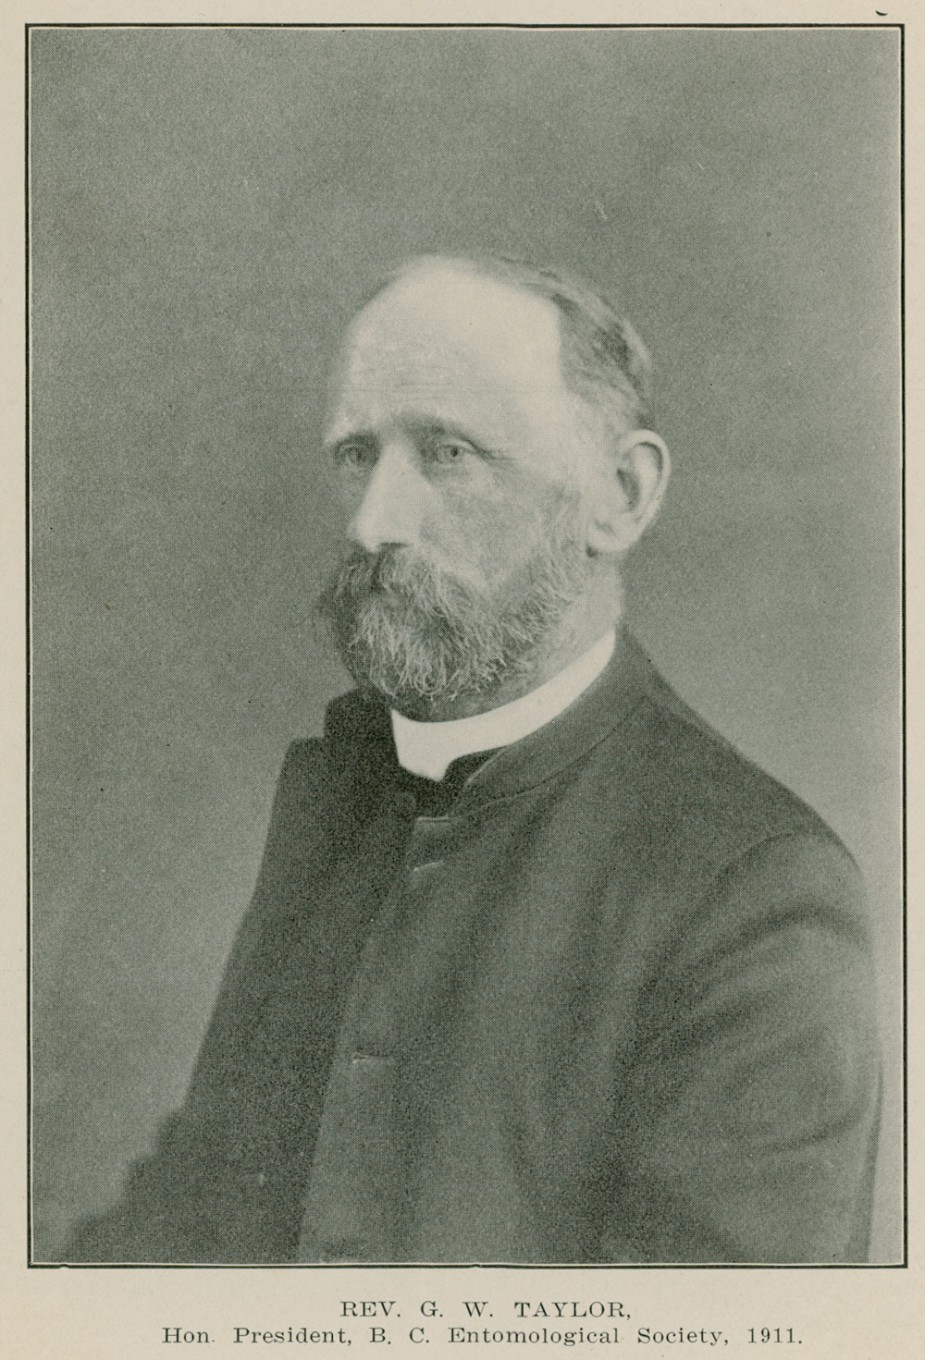 Figure 3. Rev. George W. Taylor (1851-1911). Clergyman, mollusc expert, lepidopterist, and founder and first Director of the Marine Biological Station at Nanaimo.